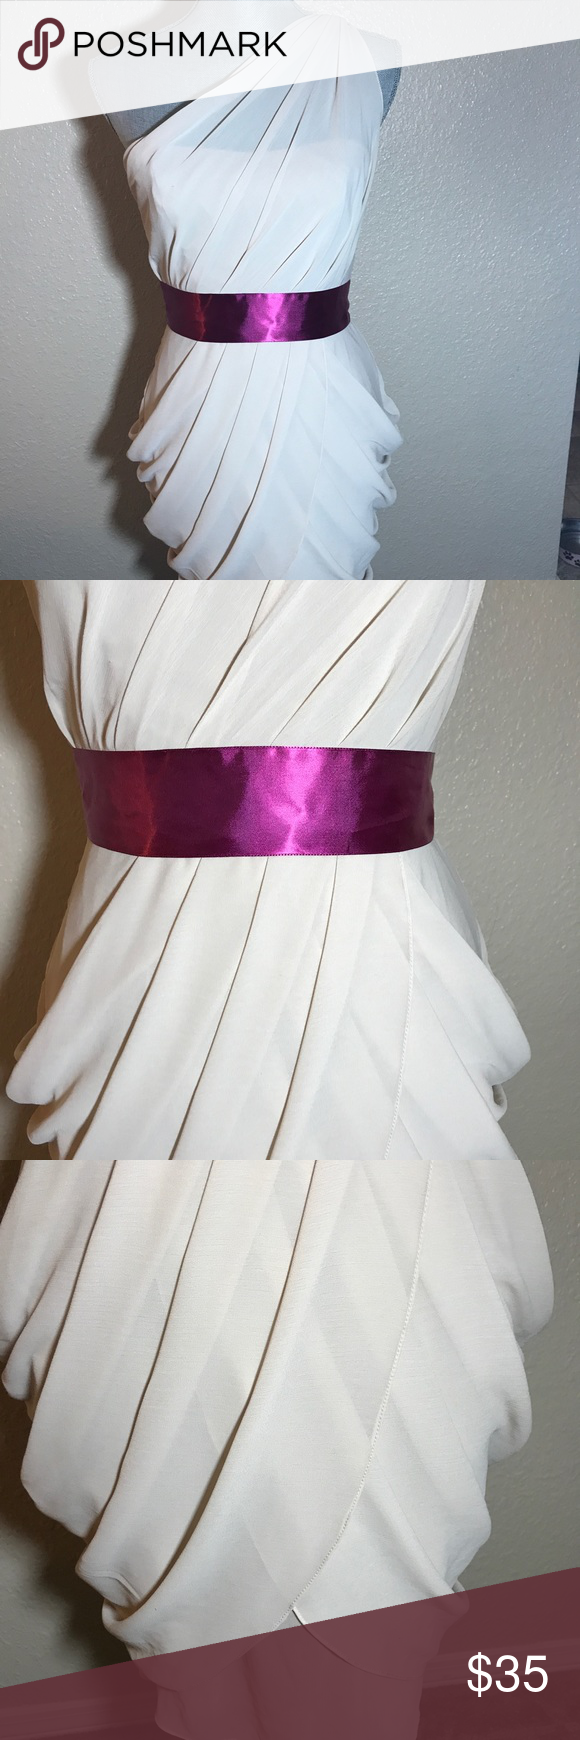 Formal dress for a wedding/prom/event size 4 | Formal, Prom and ...